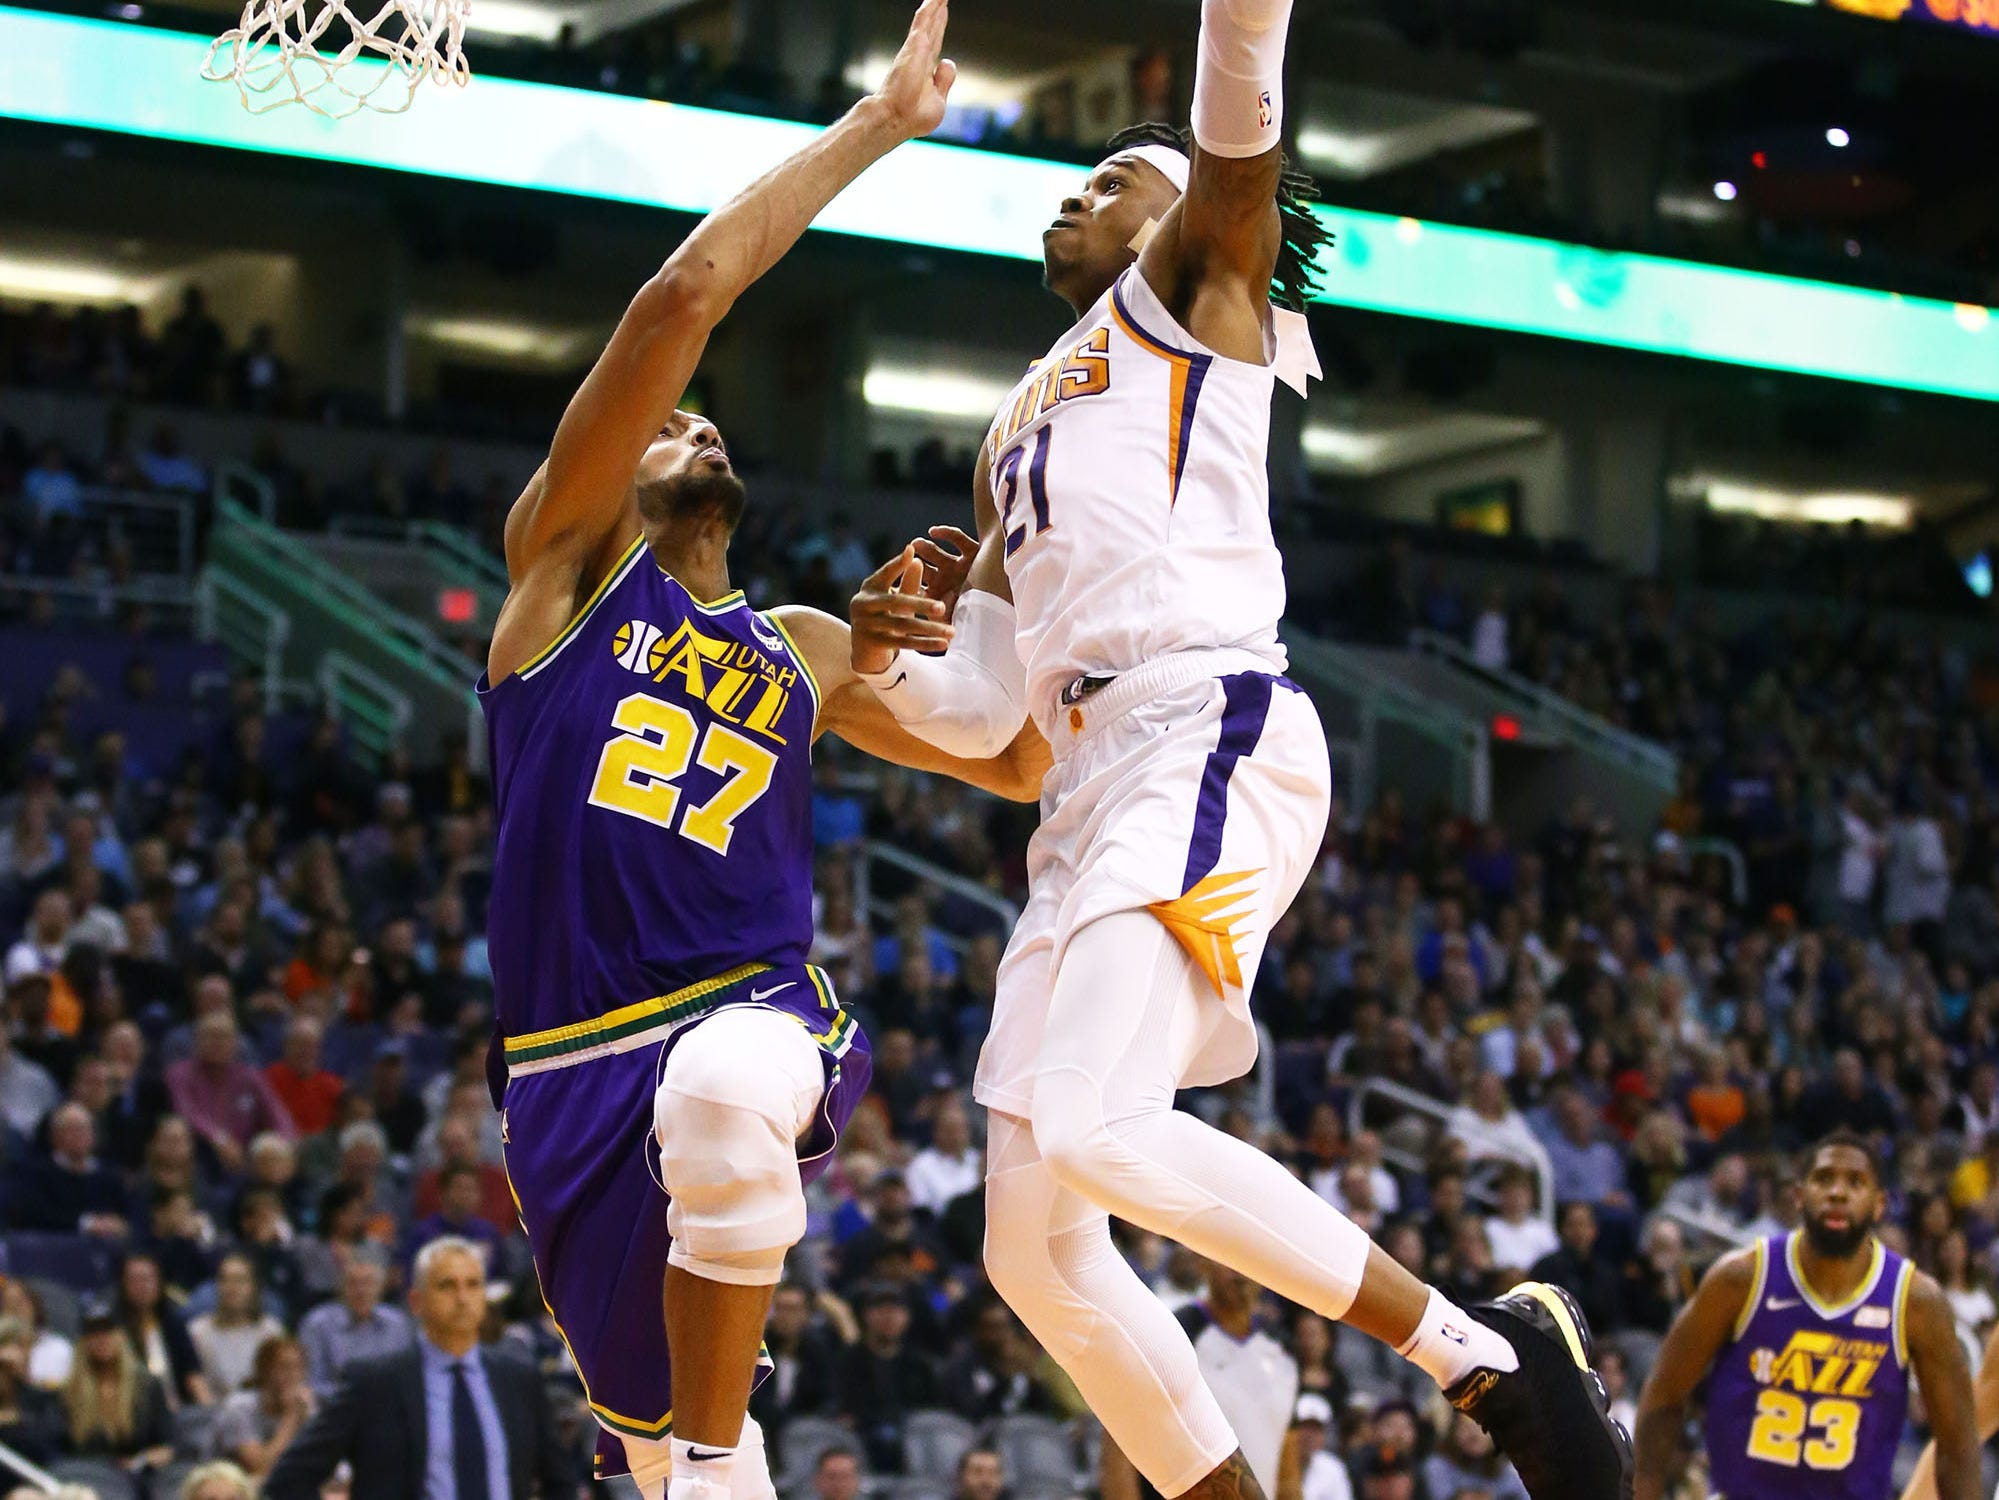 Phoenix Suns forward Richaun Holmes (21) dunks the ball over Utah Jazz center Rudy Gobert (27) in the second half on Mar. 13, 2019 at Talking Stick Resort Arena in Phoenix, Ariz.